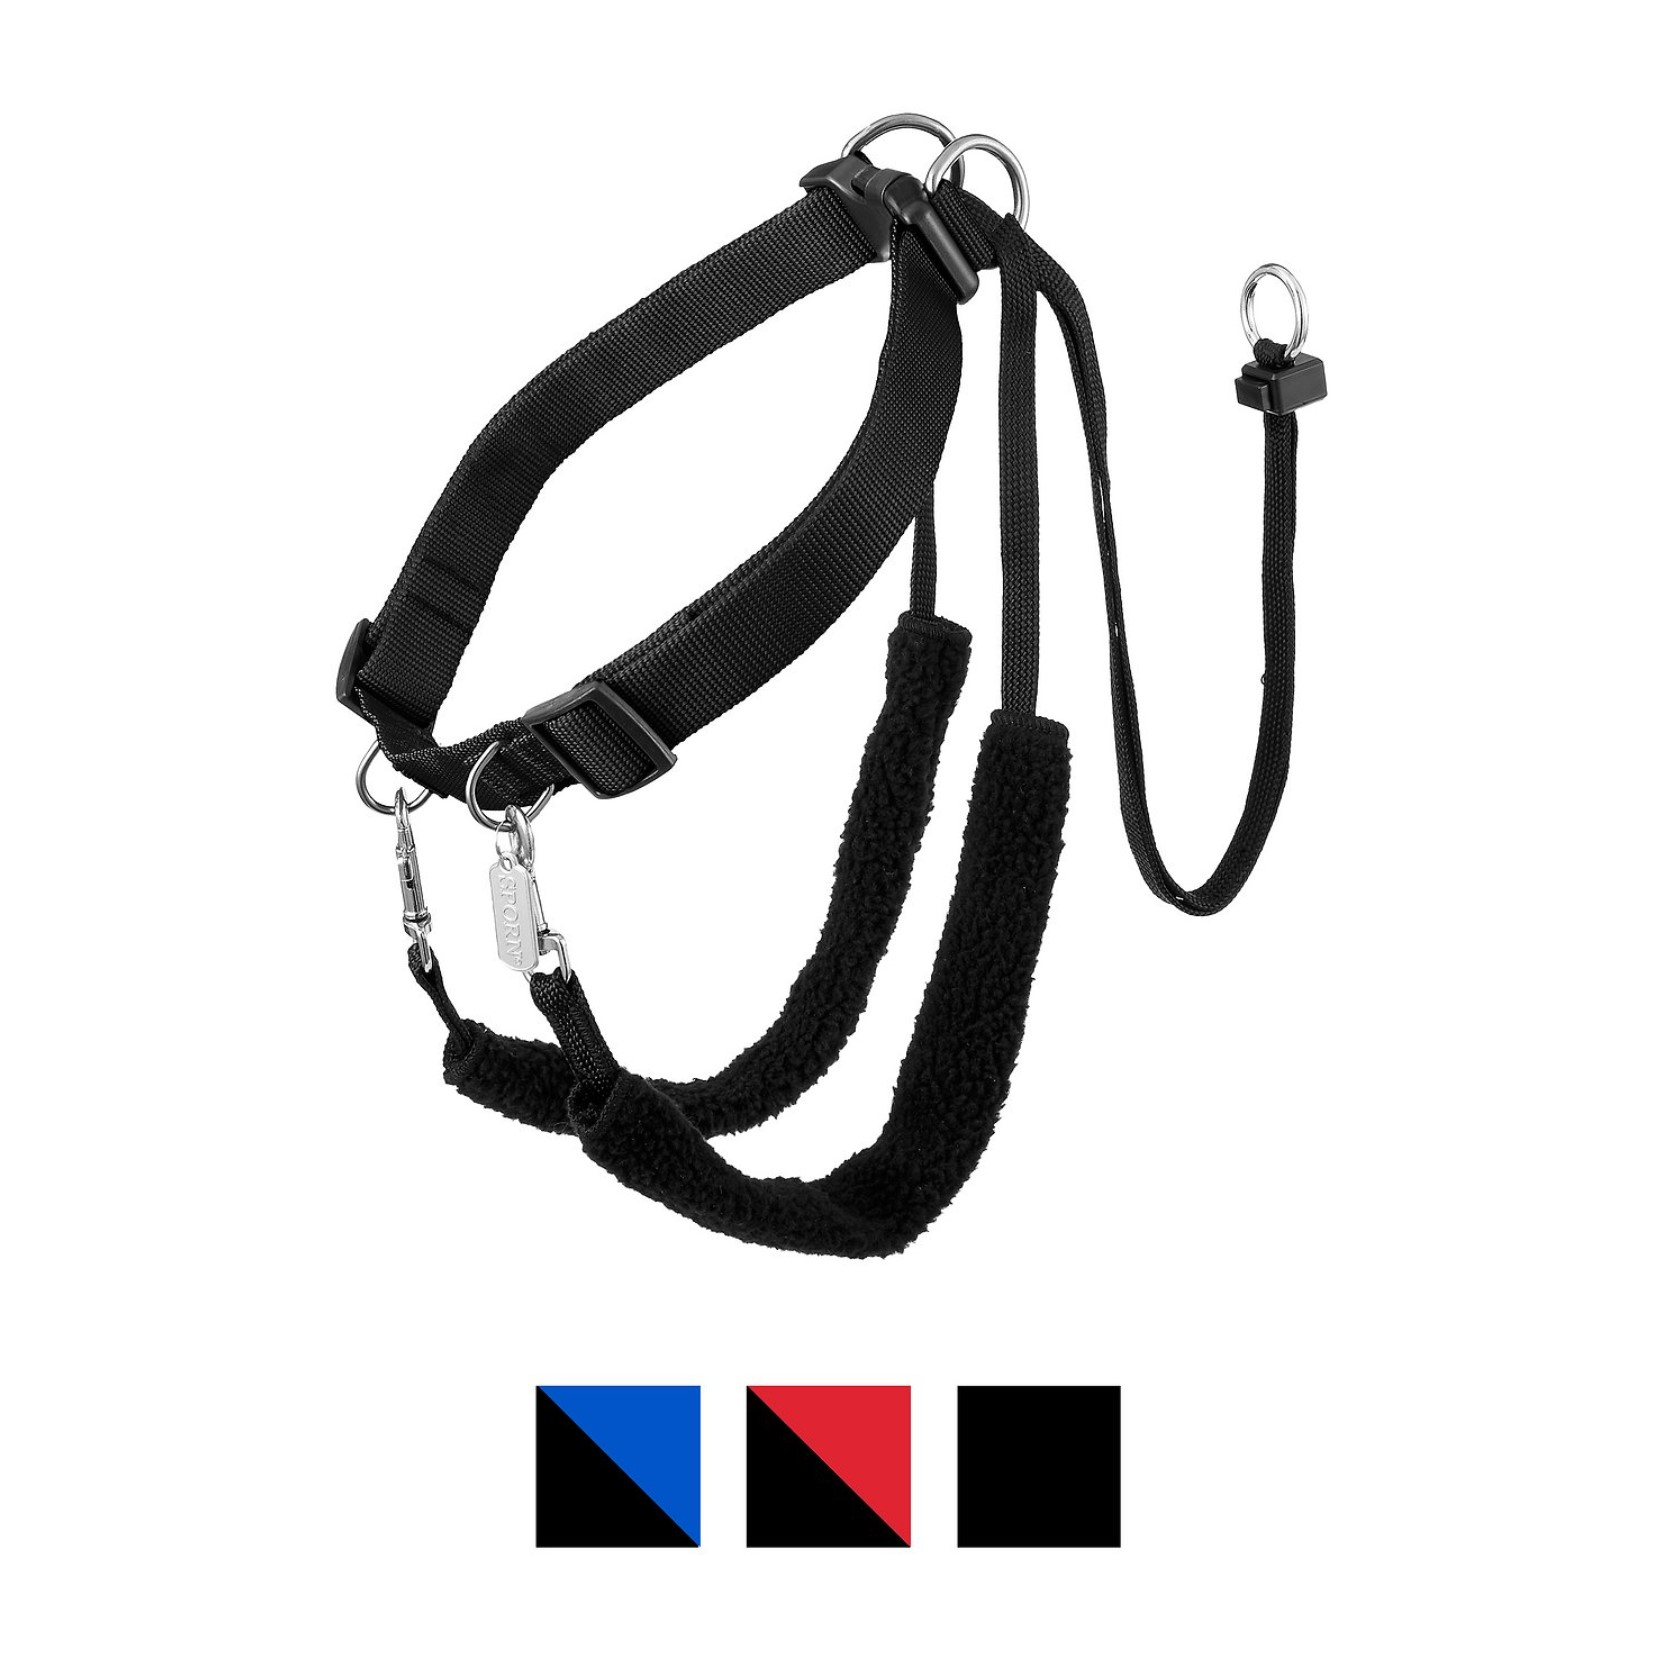 Sporn-Training-Halter-Nylon-No-Pull-Dog-Harness